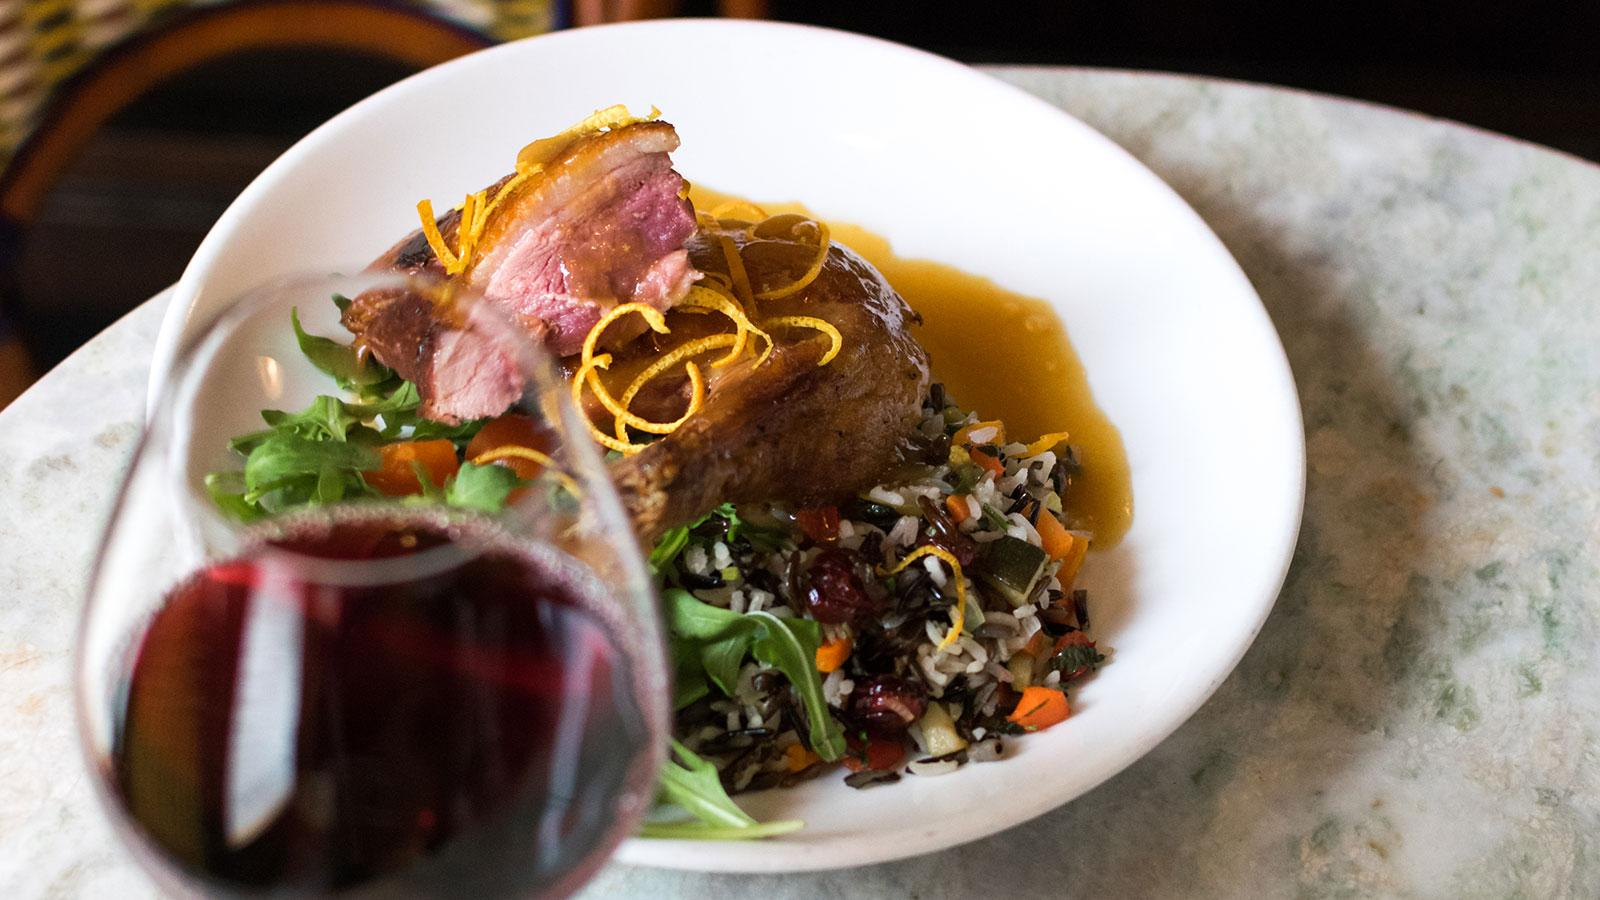 Duck dish with red wine in the foreground